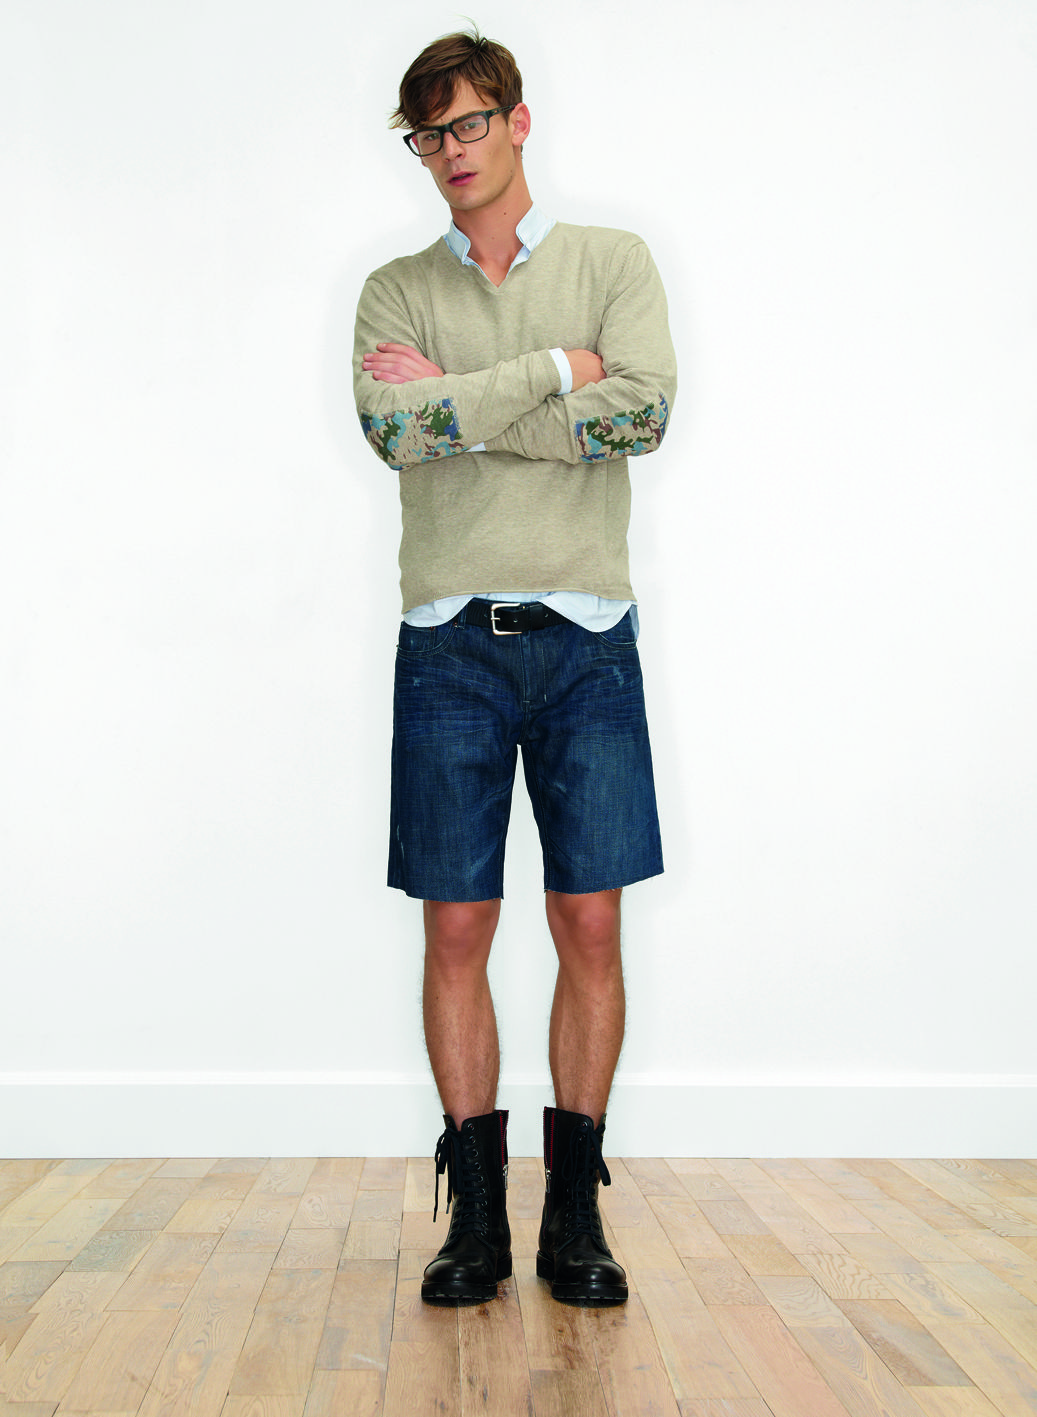 men wearing cowboy boots and shorts , Google Search